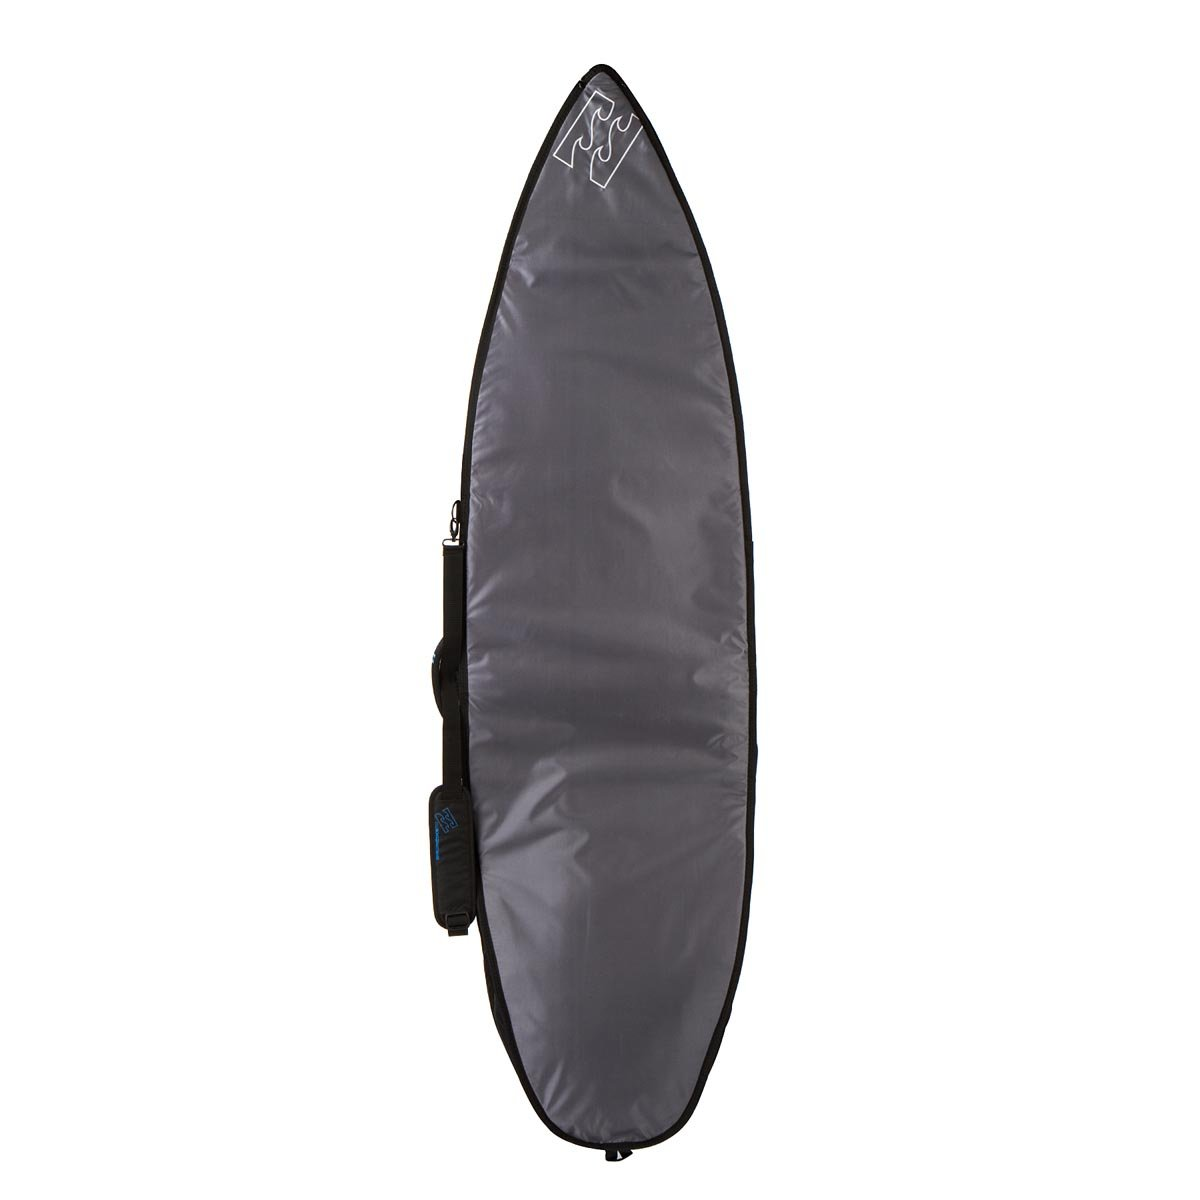 Billabong Platinum Black Travel - - Funda para tabla de surf, color negro, talla DE: Uni: Amazon.es: Deportes y aire libre